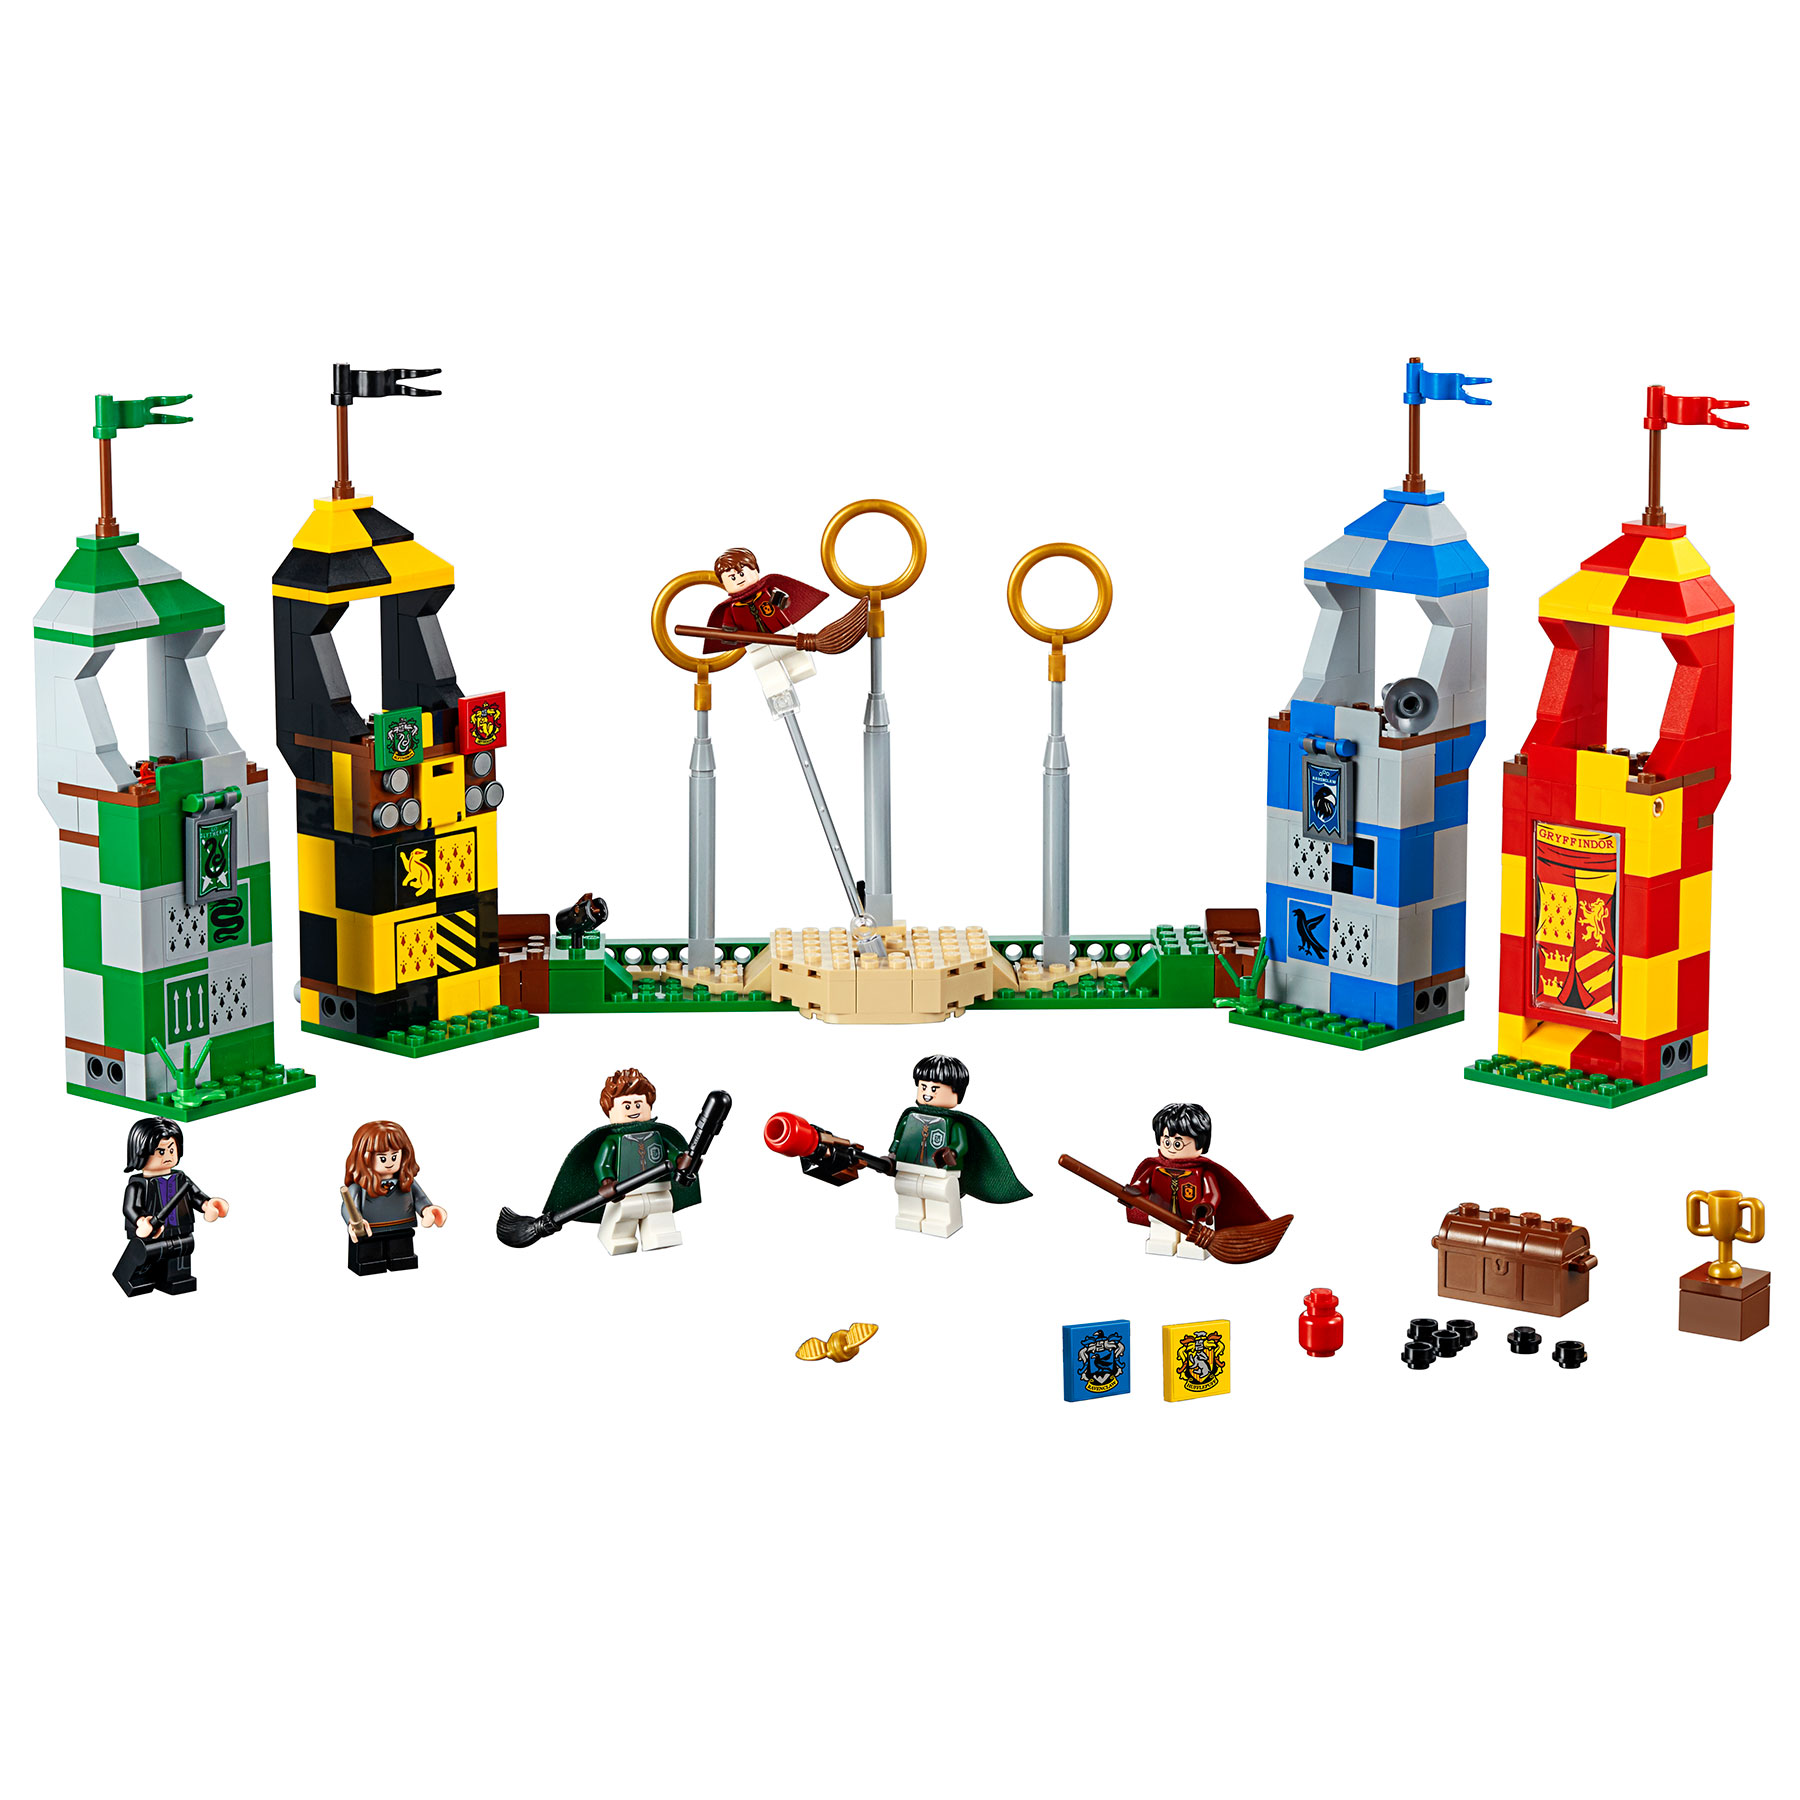 All Lego Toys : All new harry potter lego sets revealed the leaky